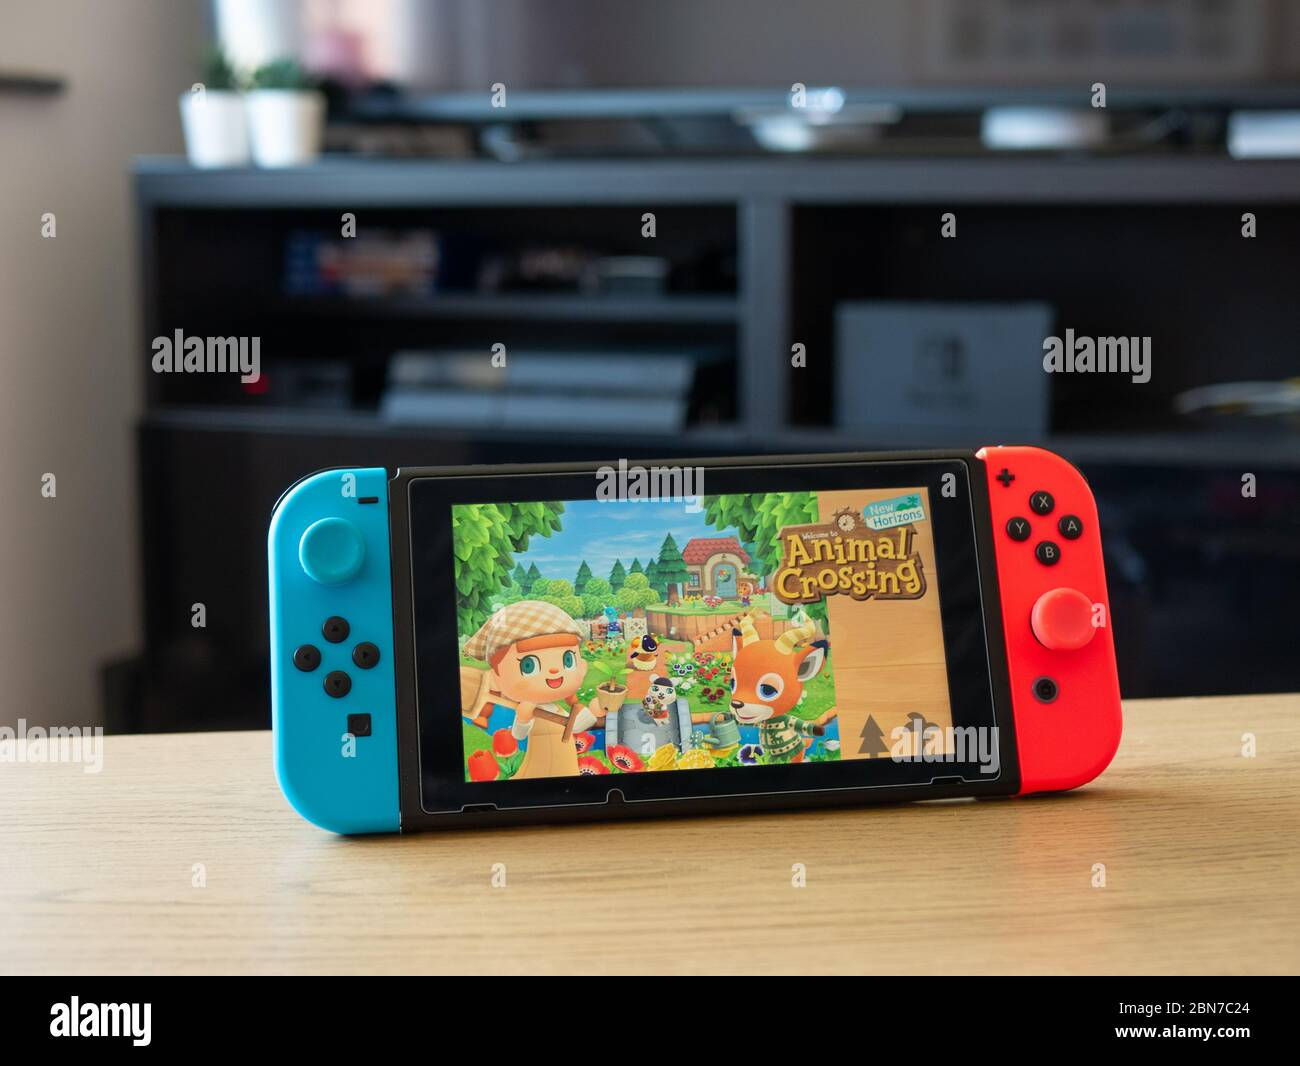 May 2020 Uk Nintendo Switch Console In Front Of Tv Unit With